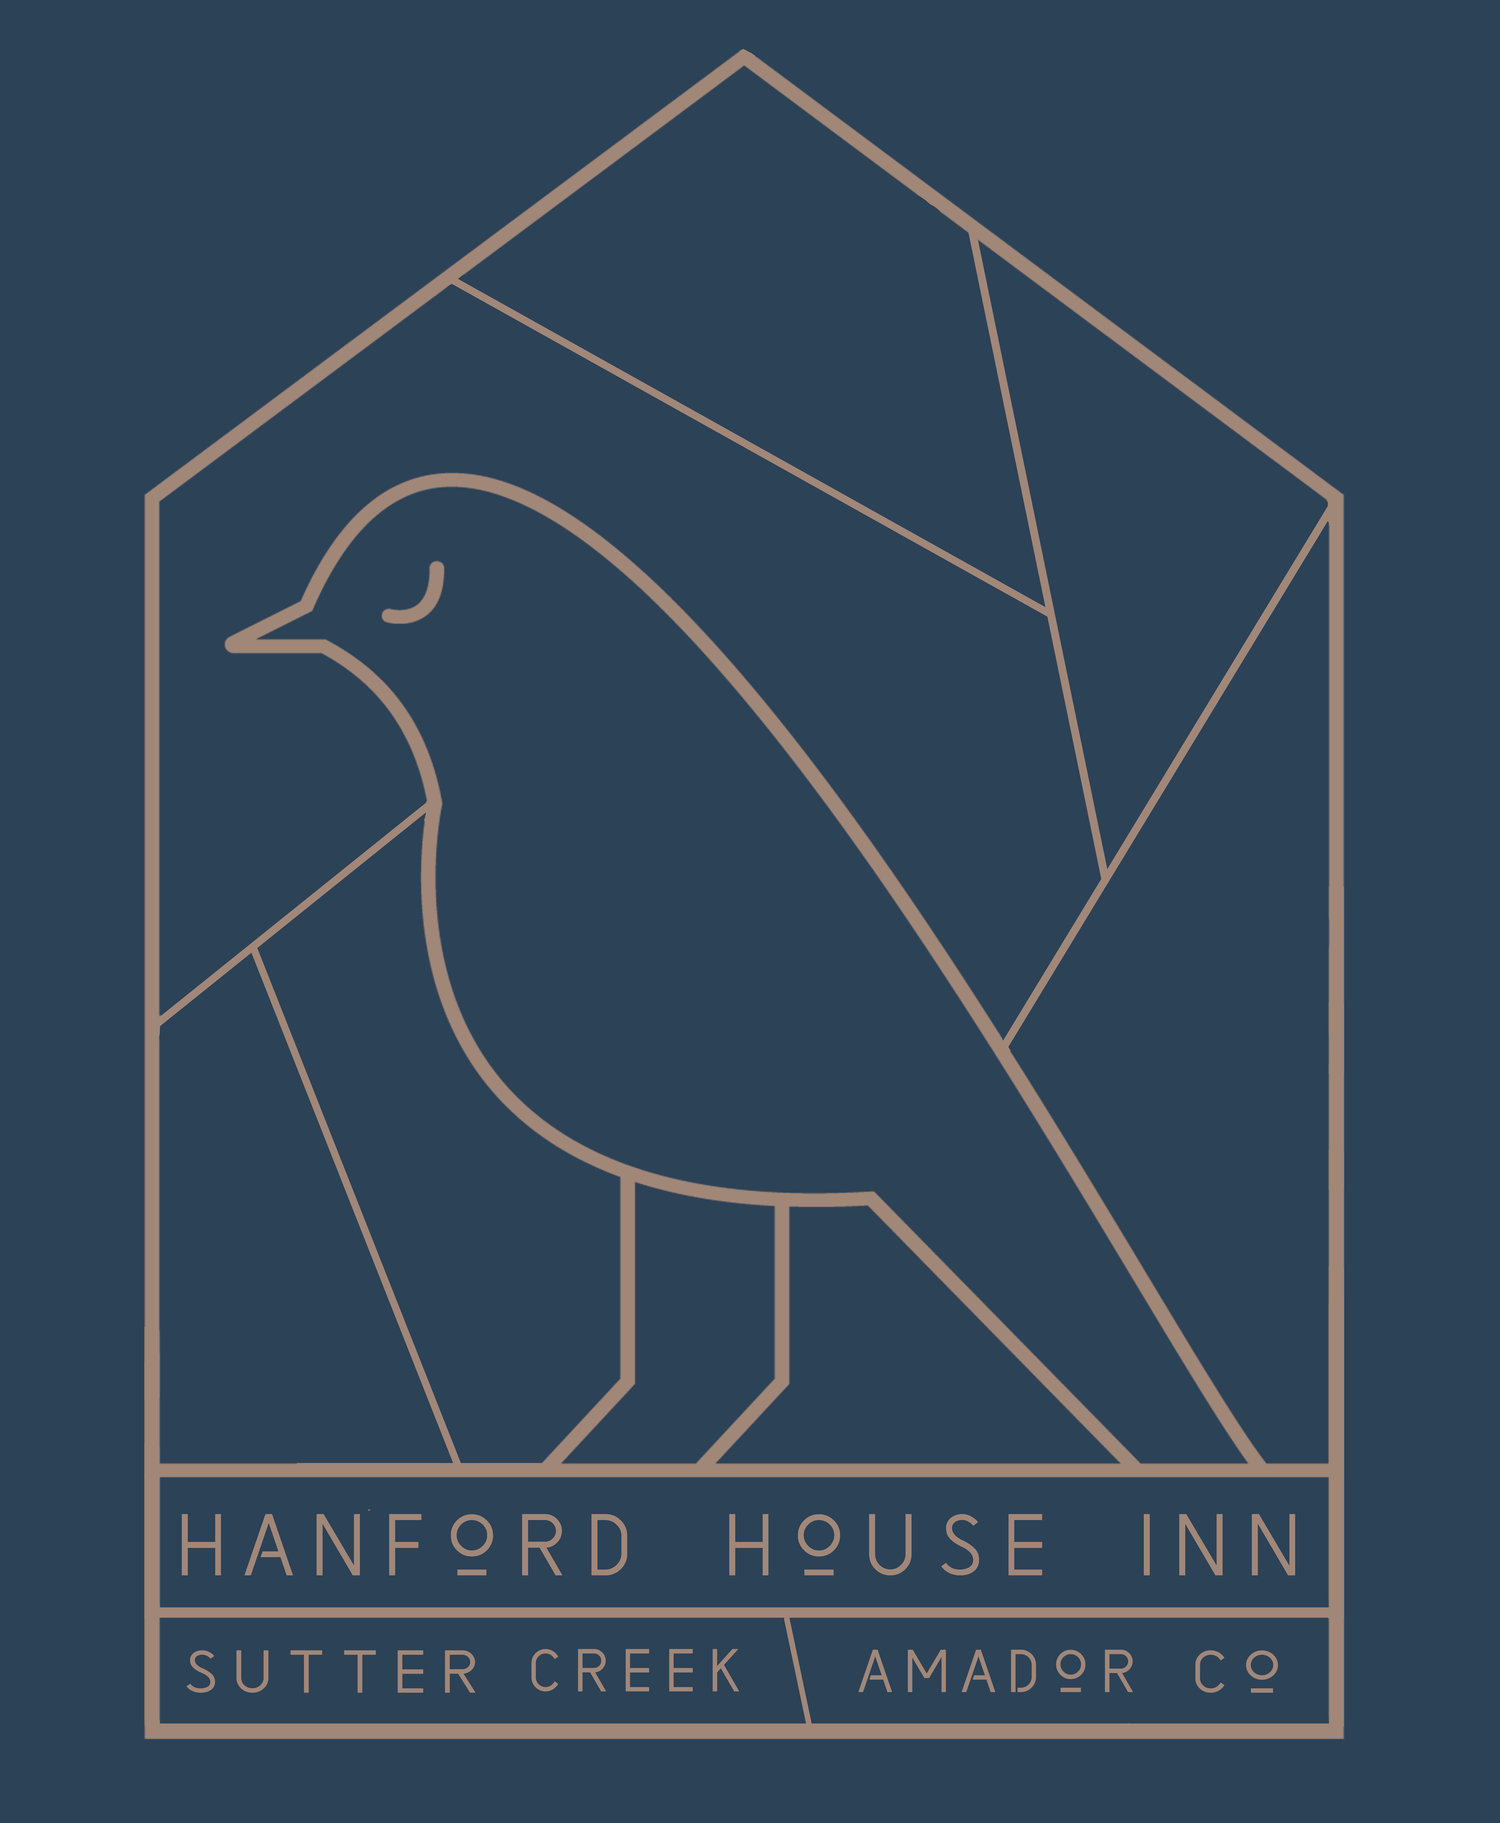 Hanford House Inn